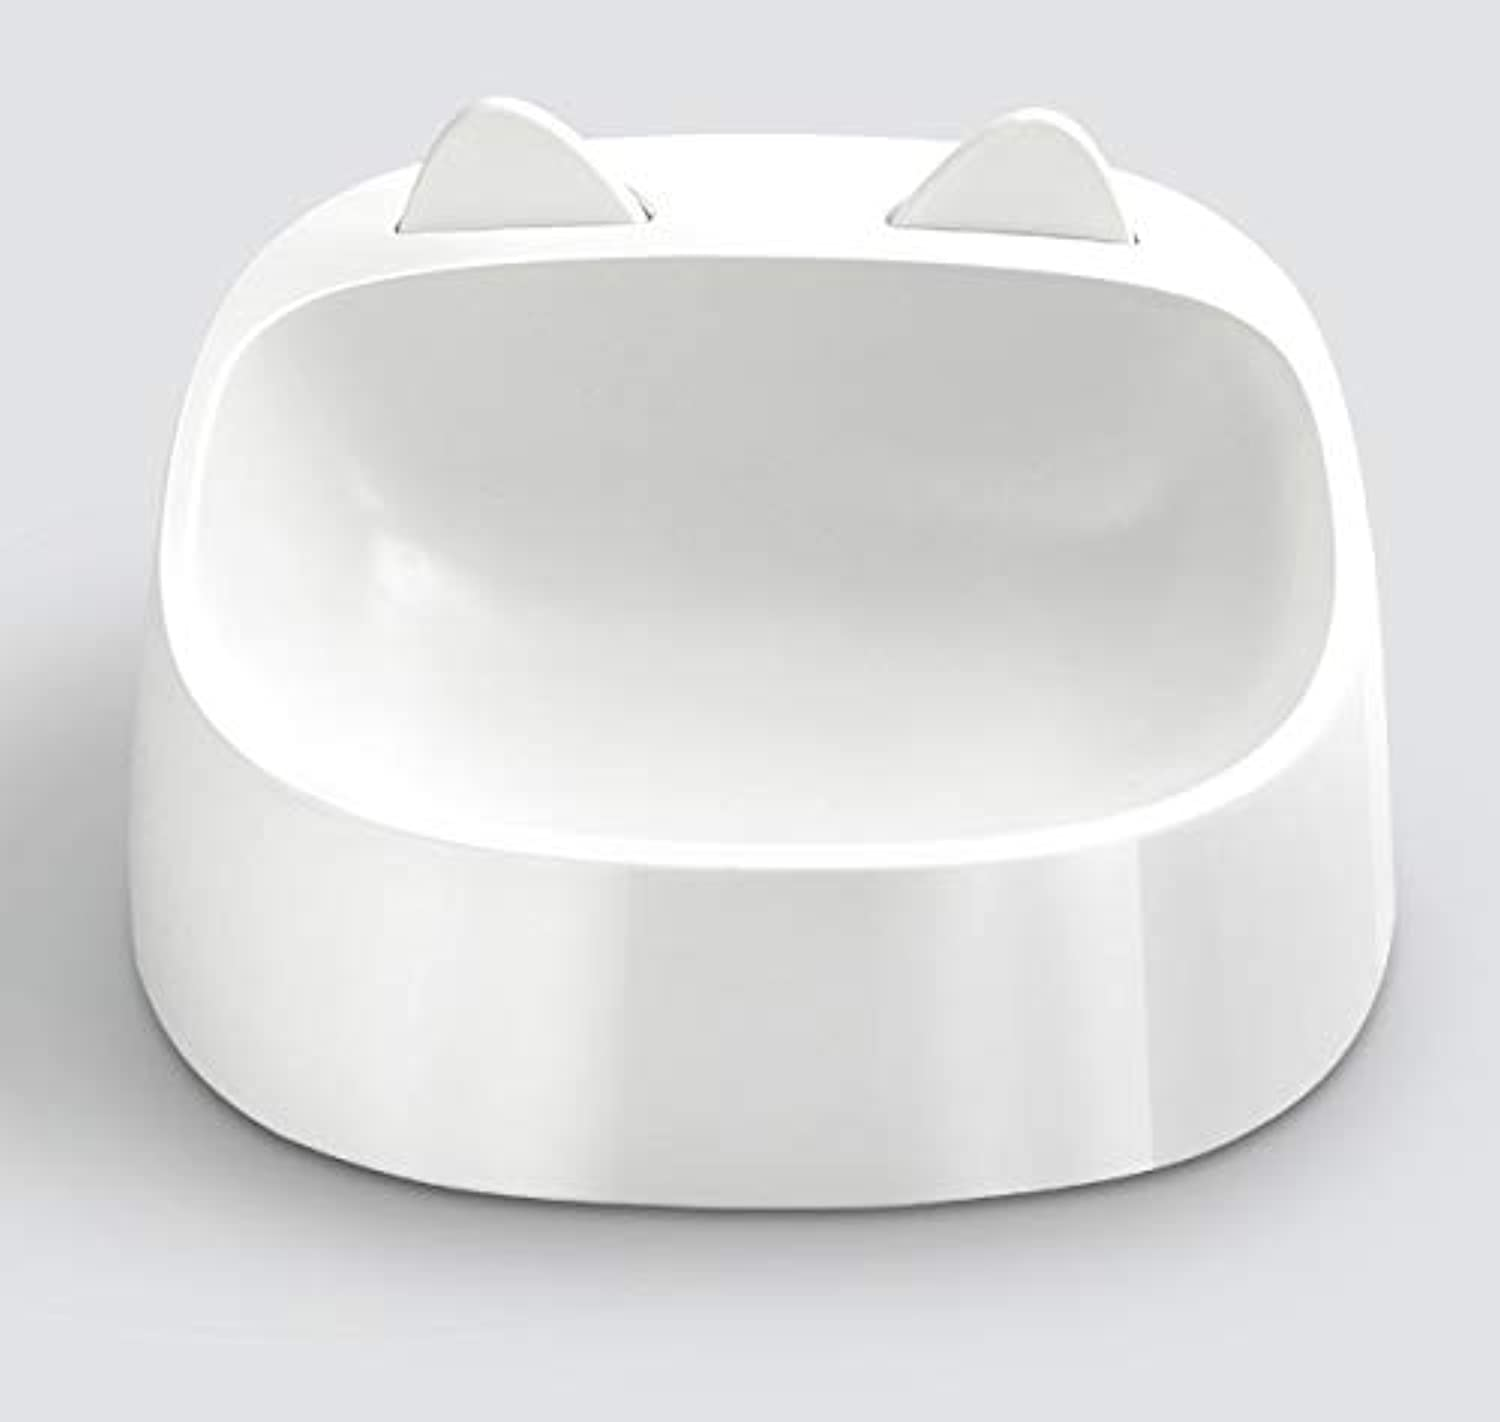 Cat Food Bowls Creative Easy to Clean Durable Cat Dish for Food and Water Tilt Angle Design Environmentally Friendly Materials